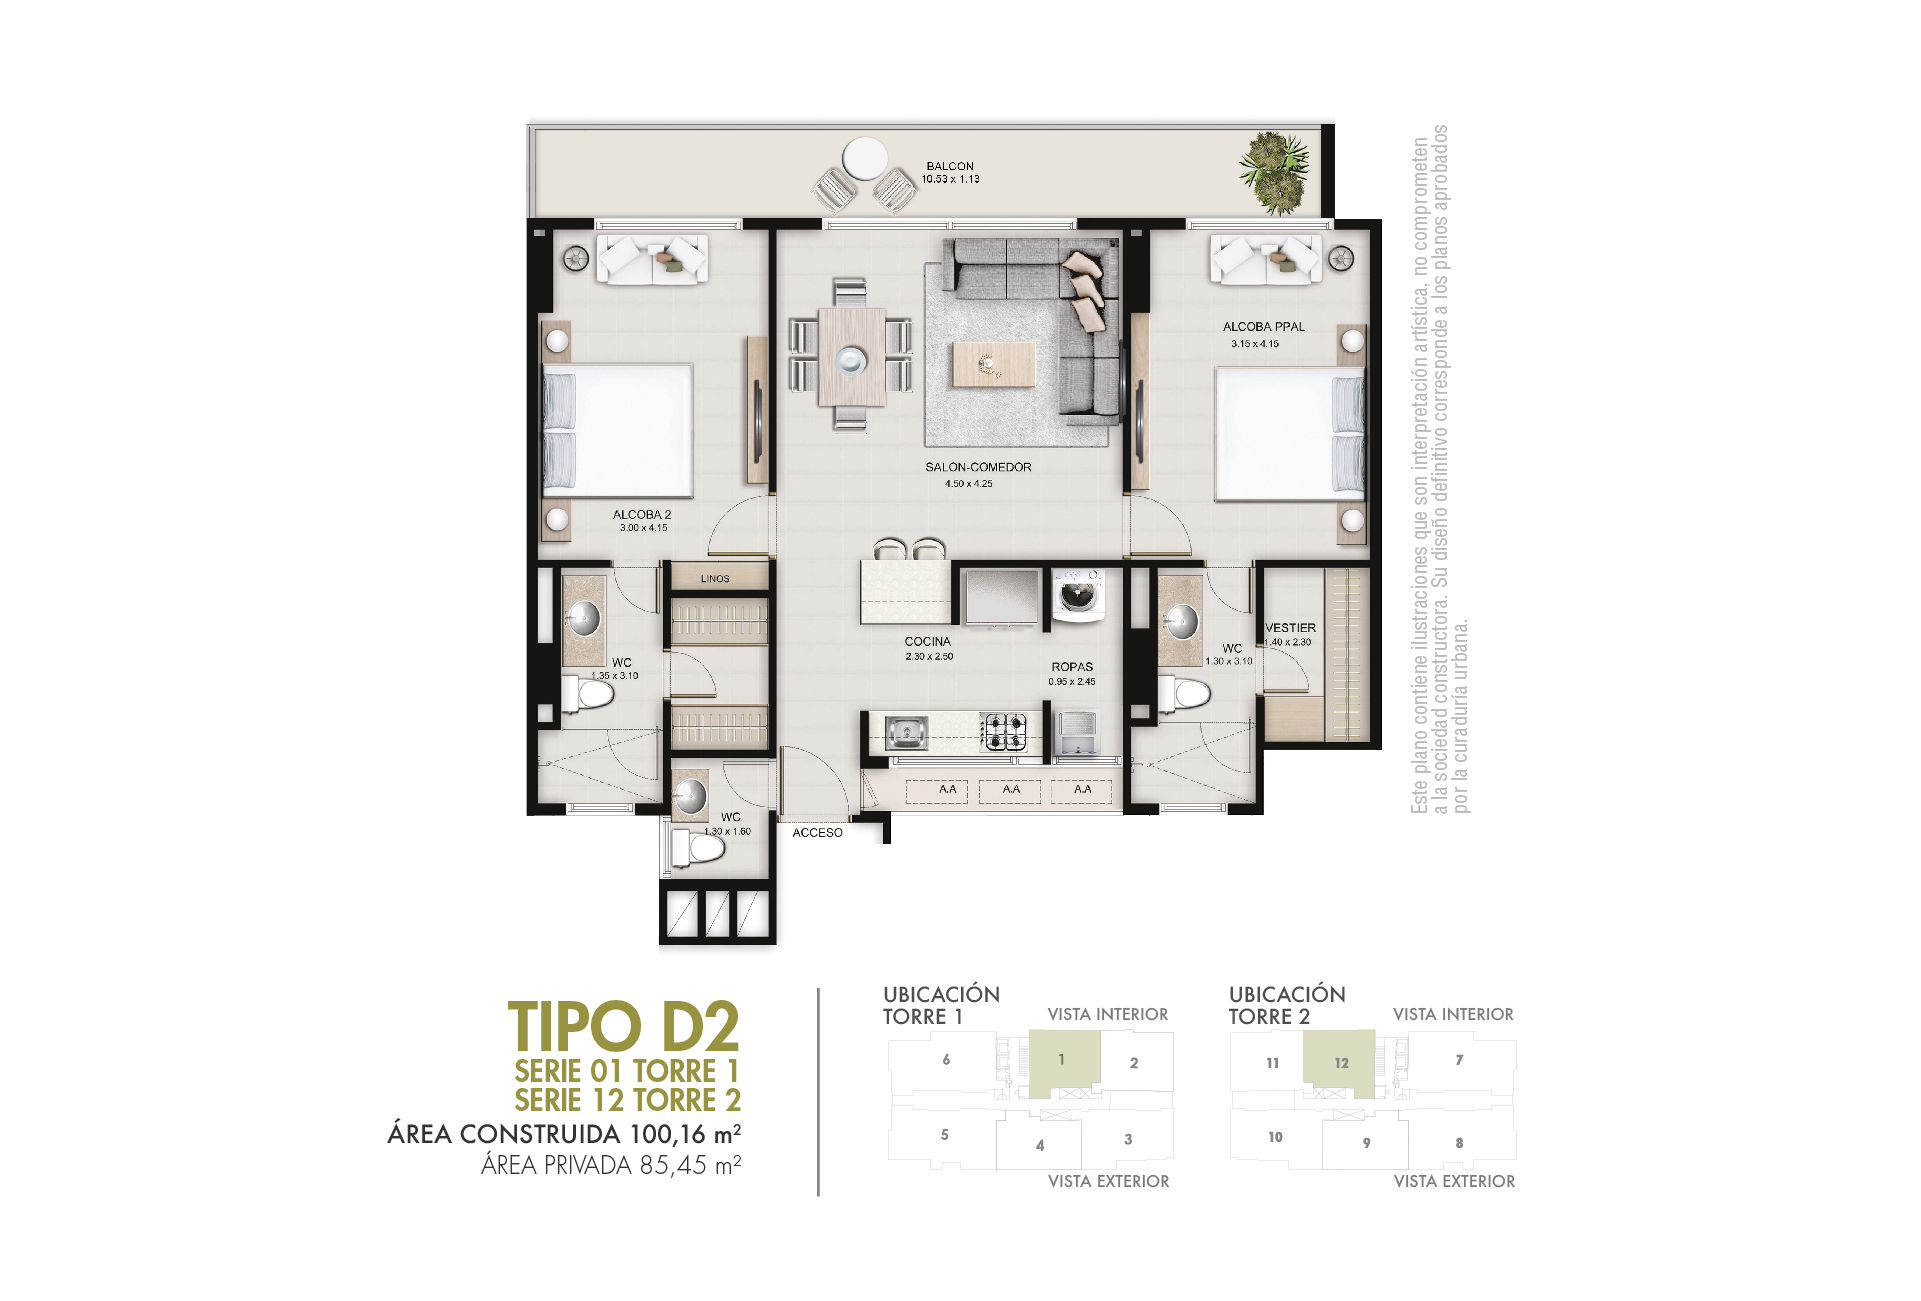 Tipo D2 85,45 m2